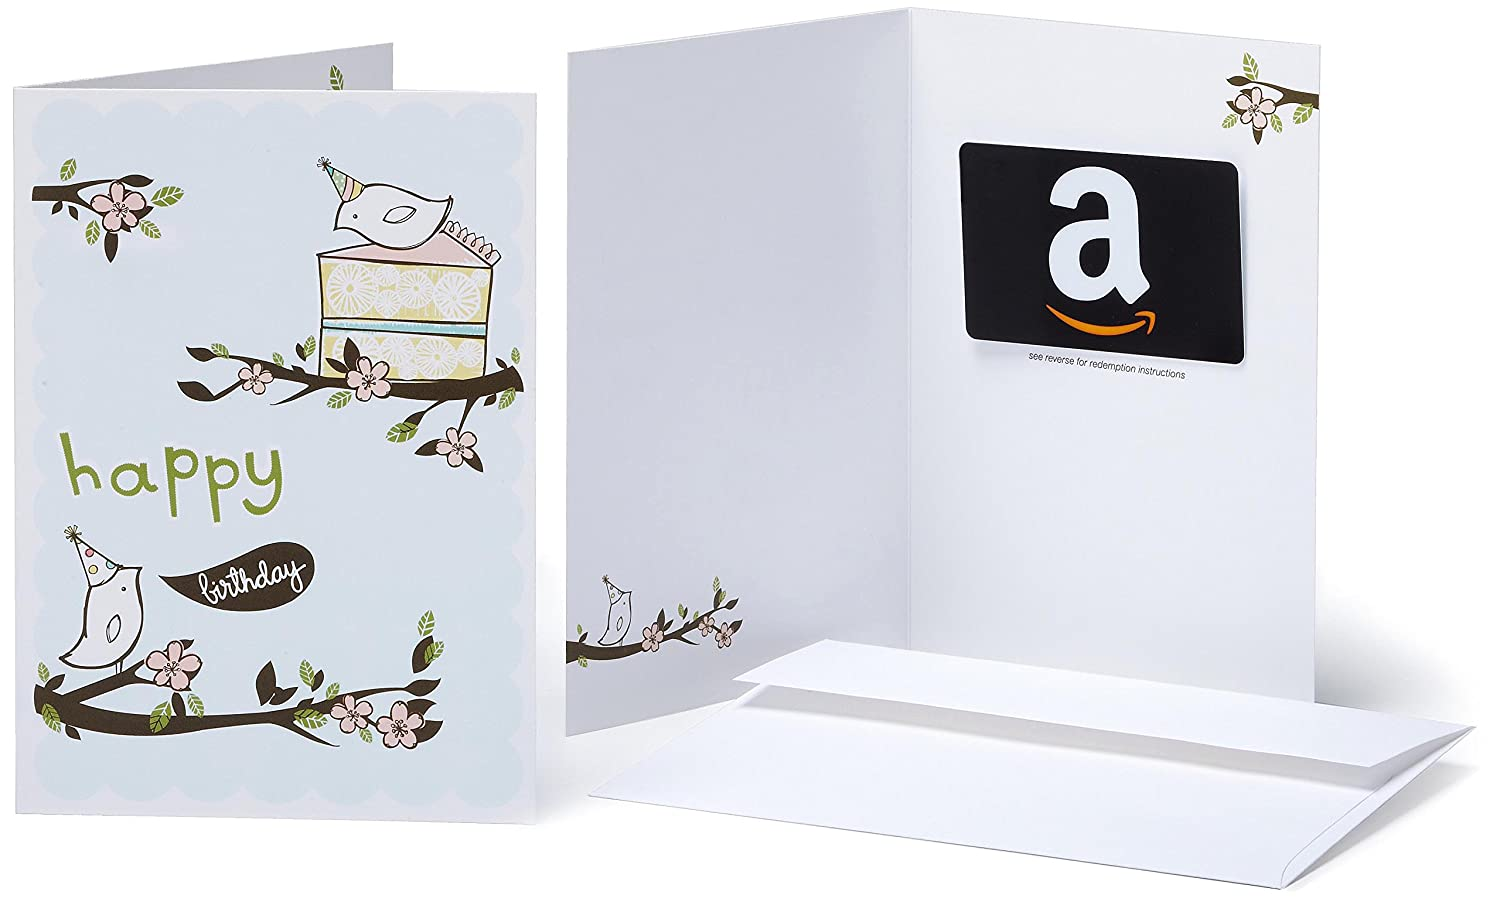 .com Gift Card in a Greeting Card VariableDenomination